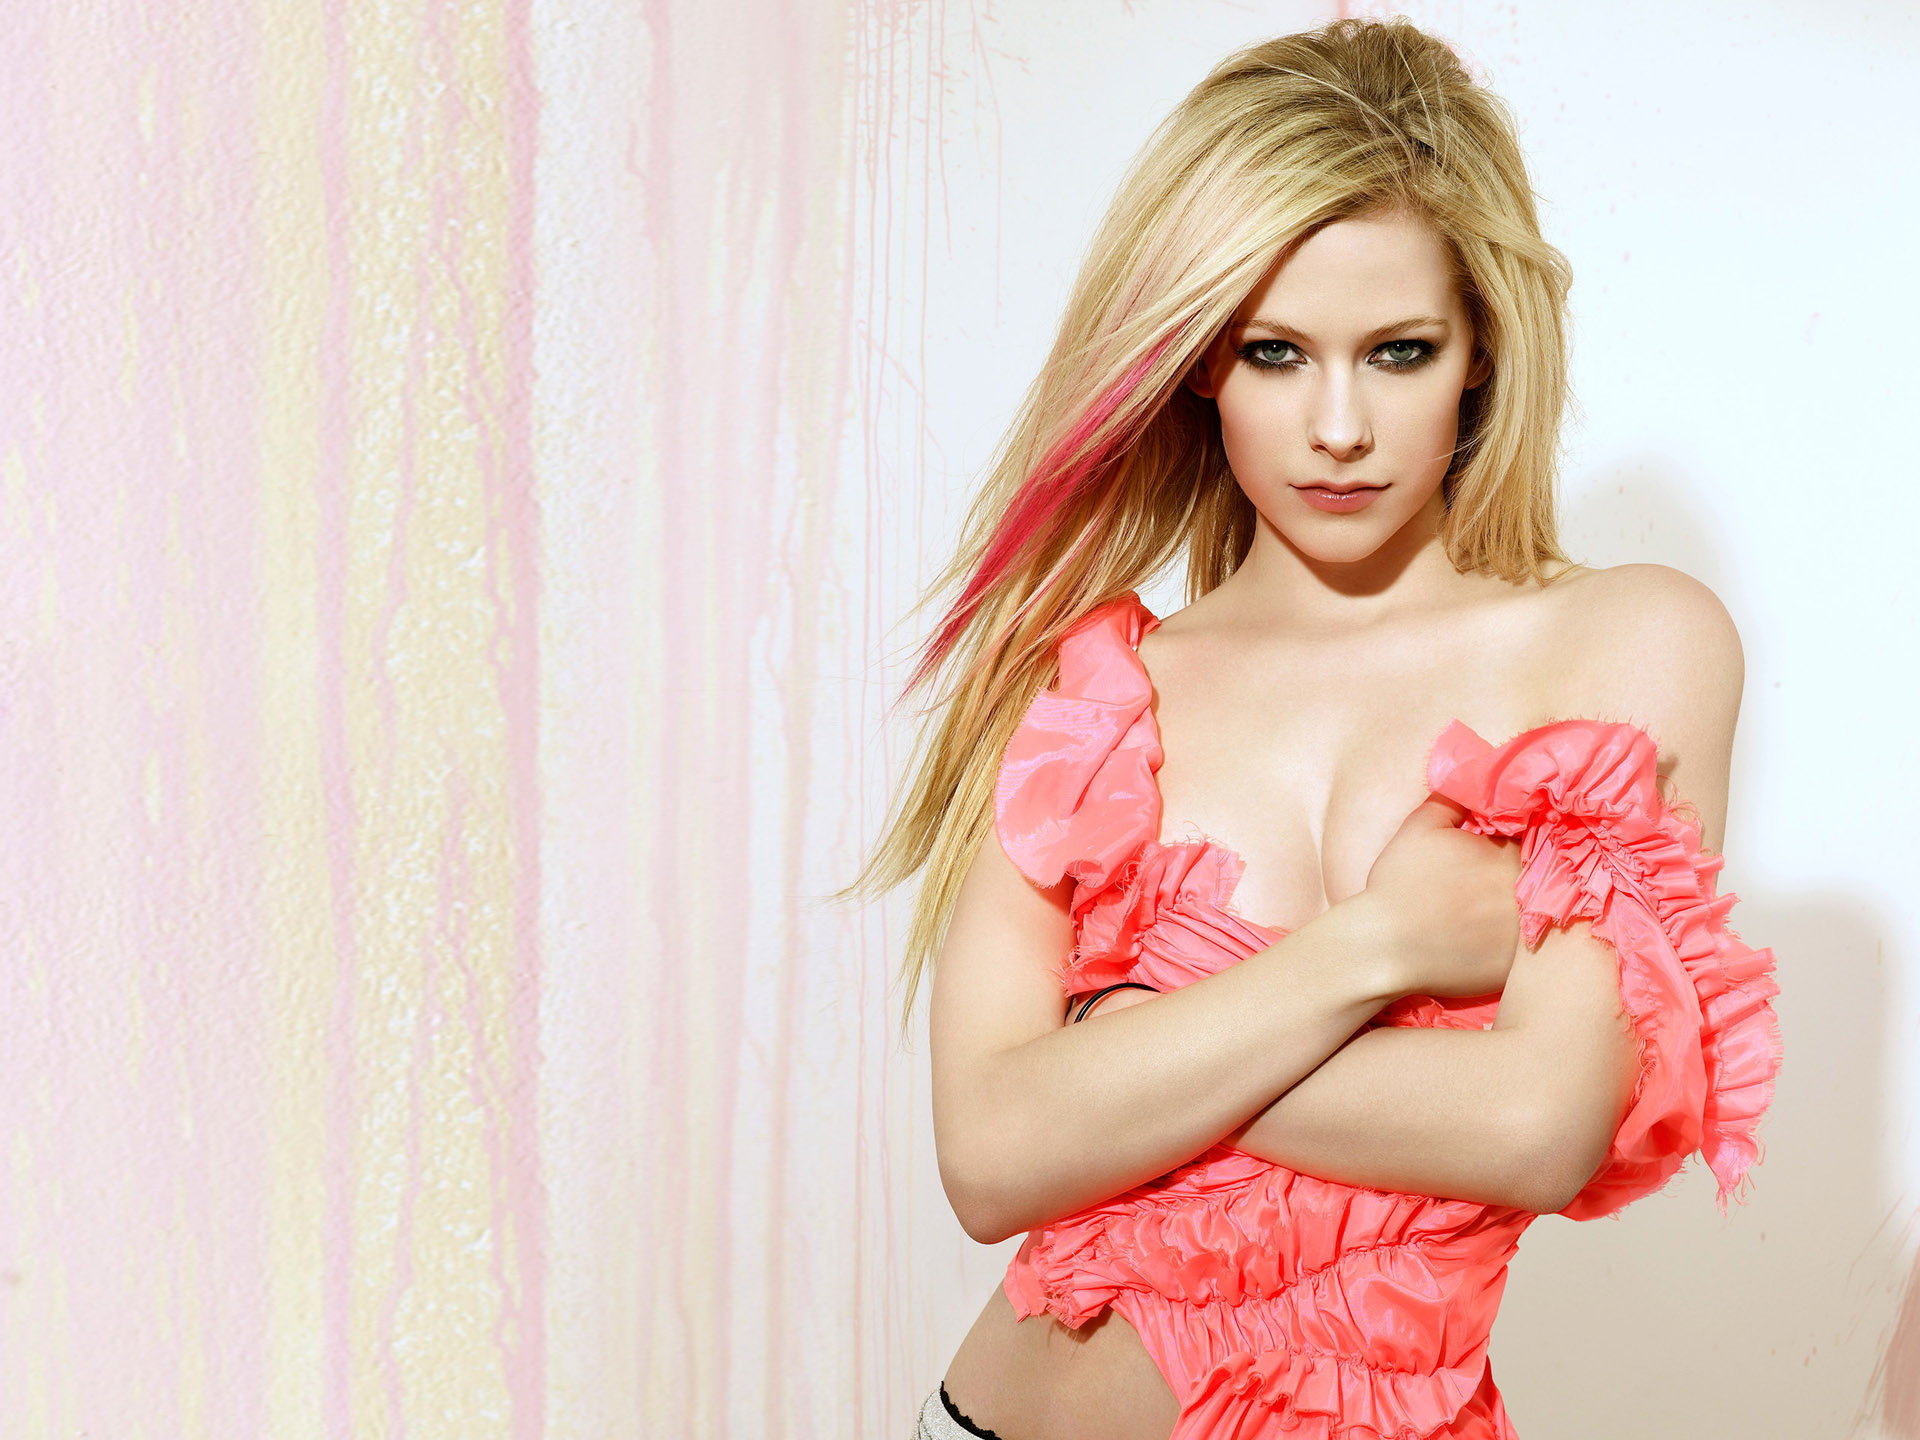 Avril Lavigne HQ 211.16 Kb